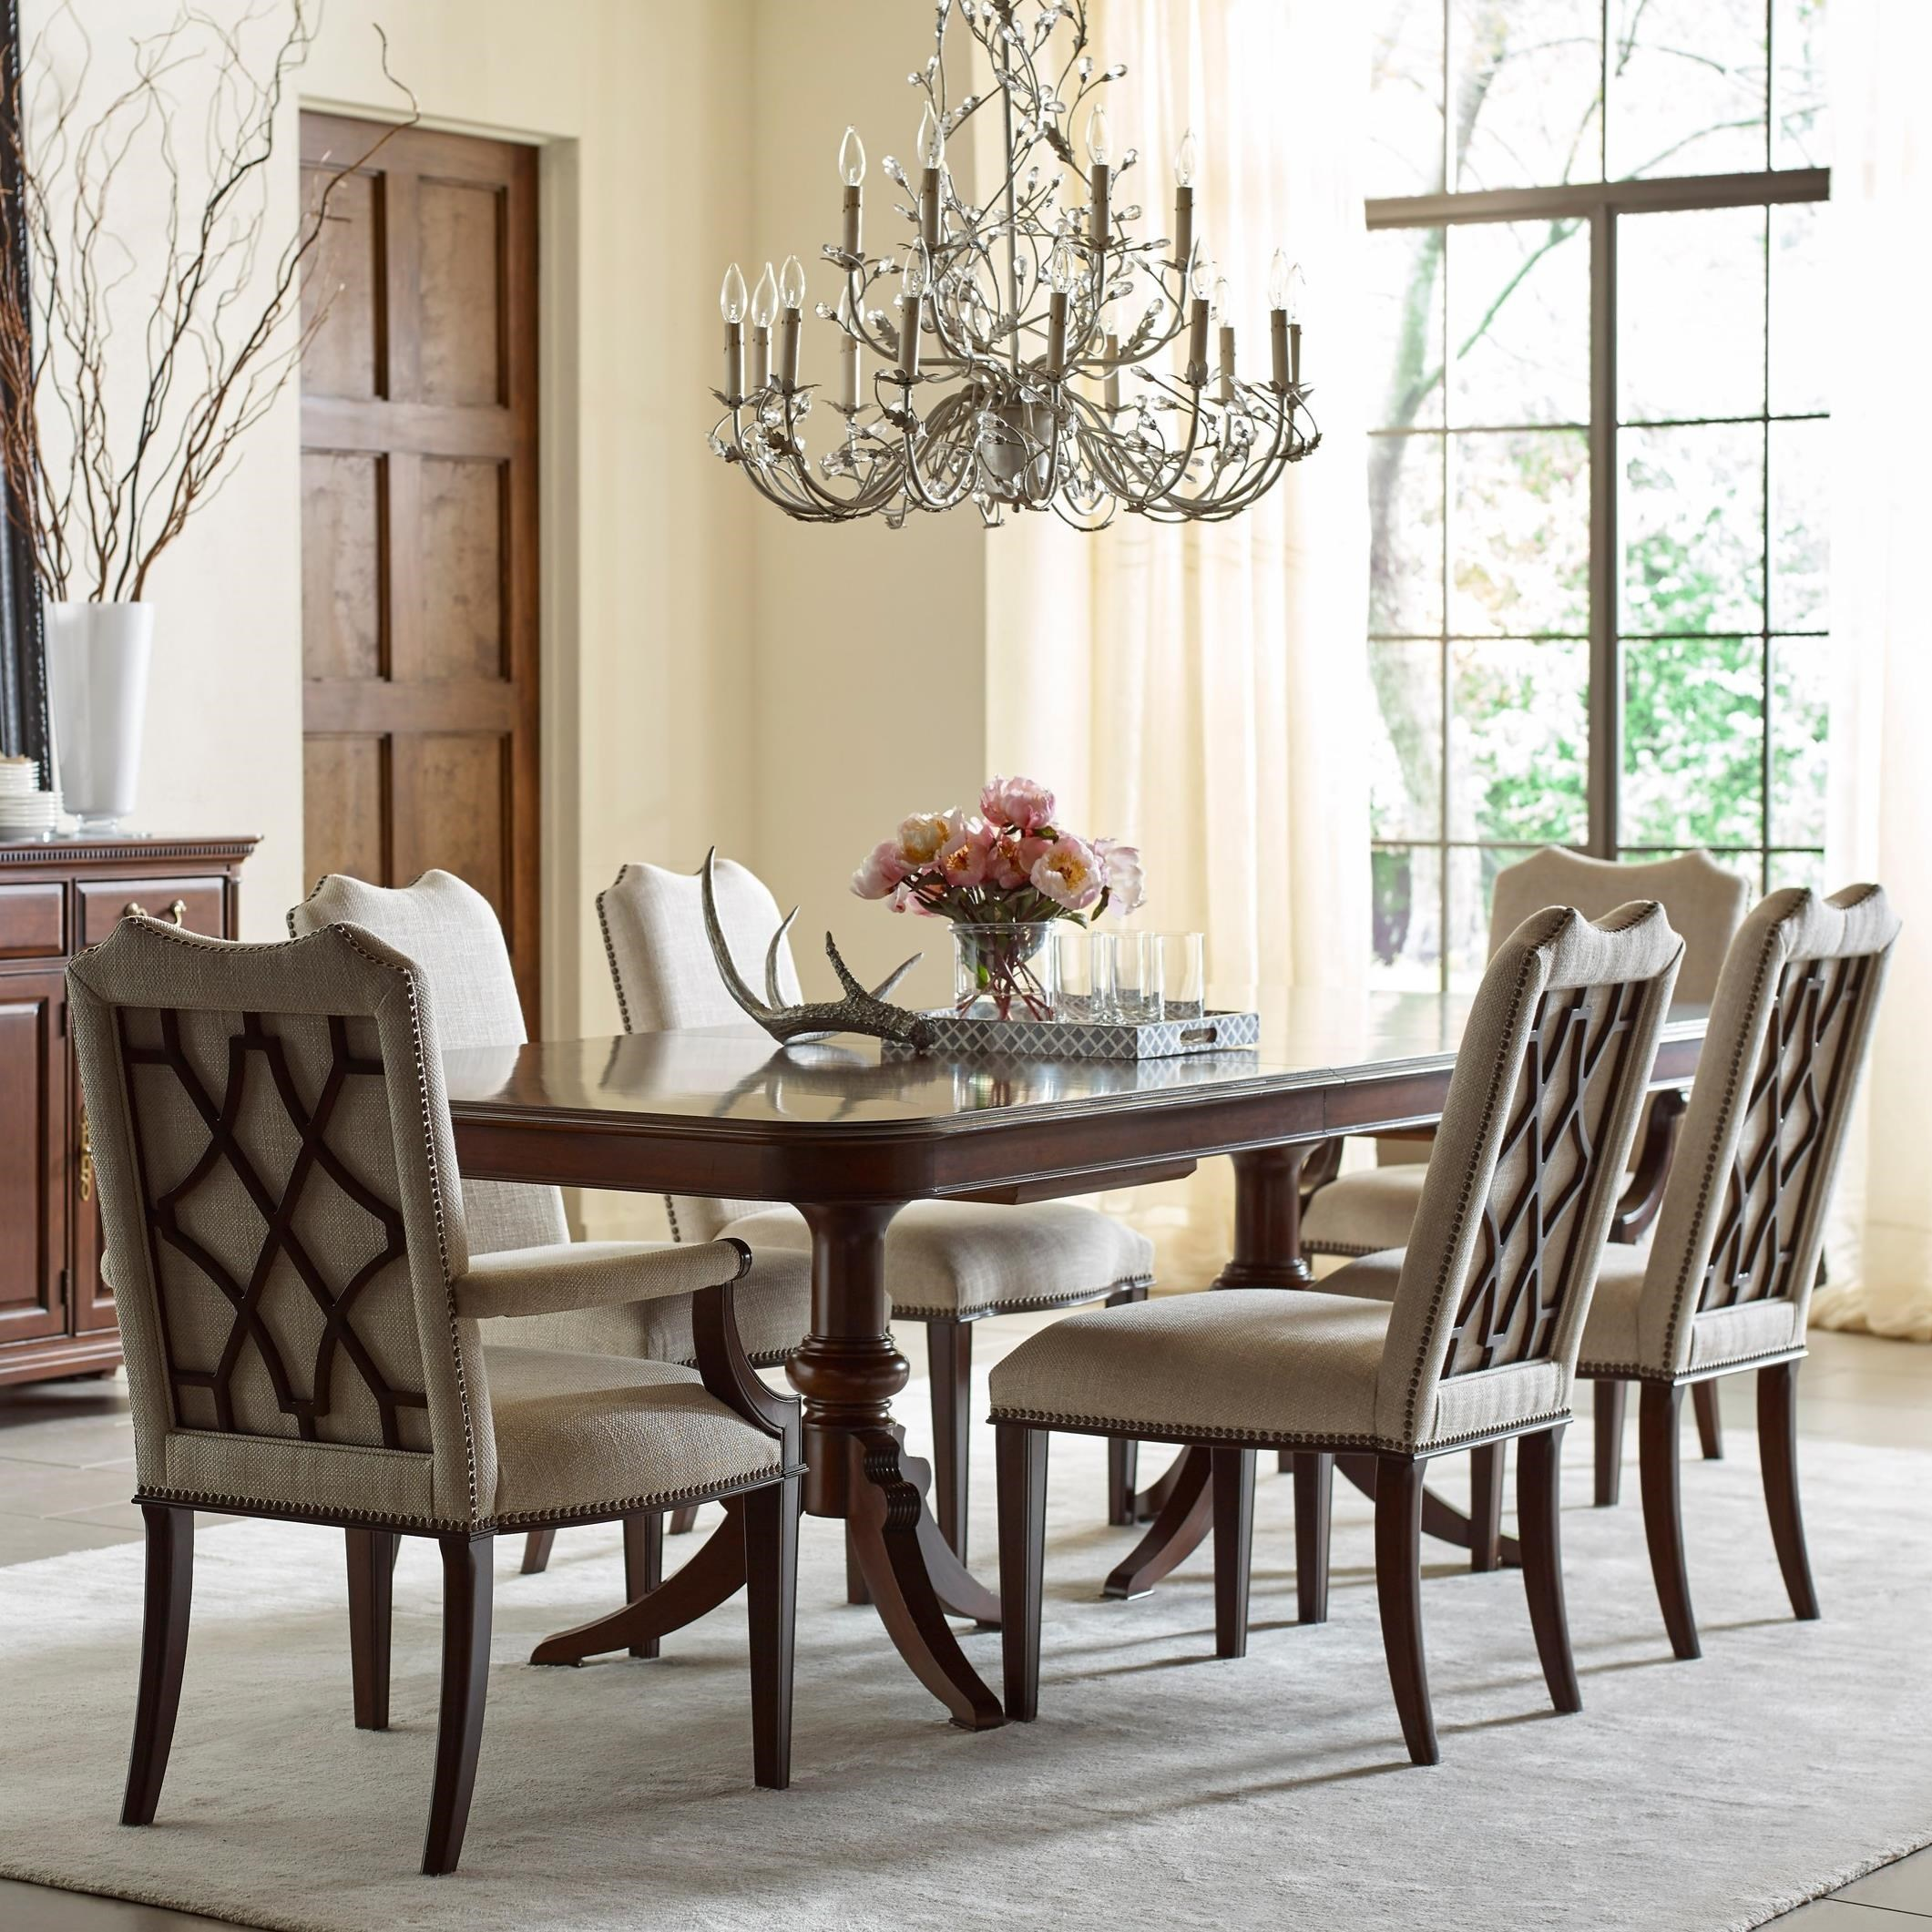 Hadleigh 7 Pc Dining Set by Kincaid Furniture at Northeast Factory Direct